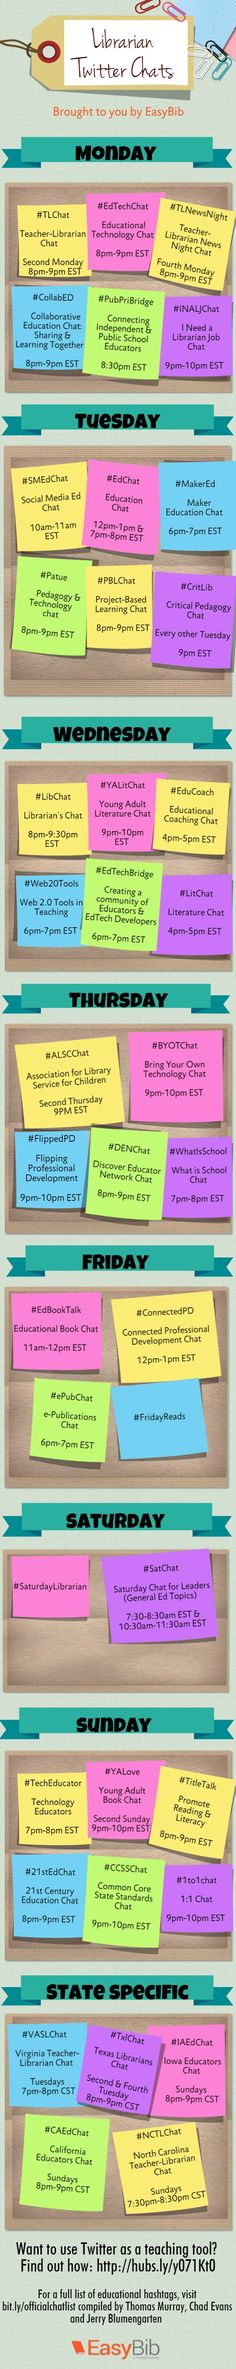 Librarian Twitter Chats   Piktochart Infographic Editor Great to share with all educators!